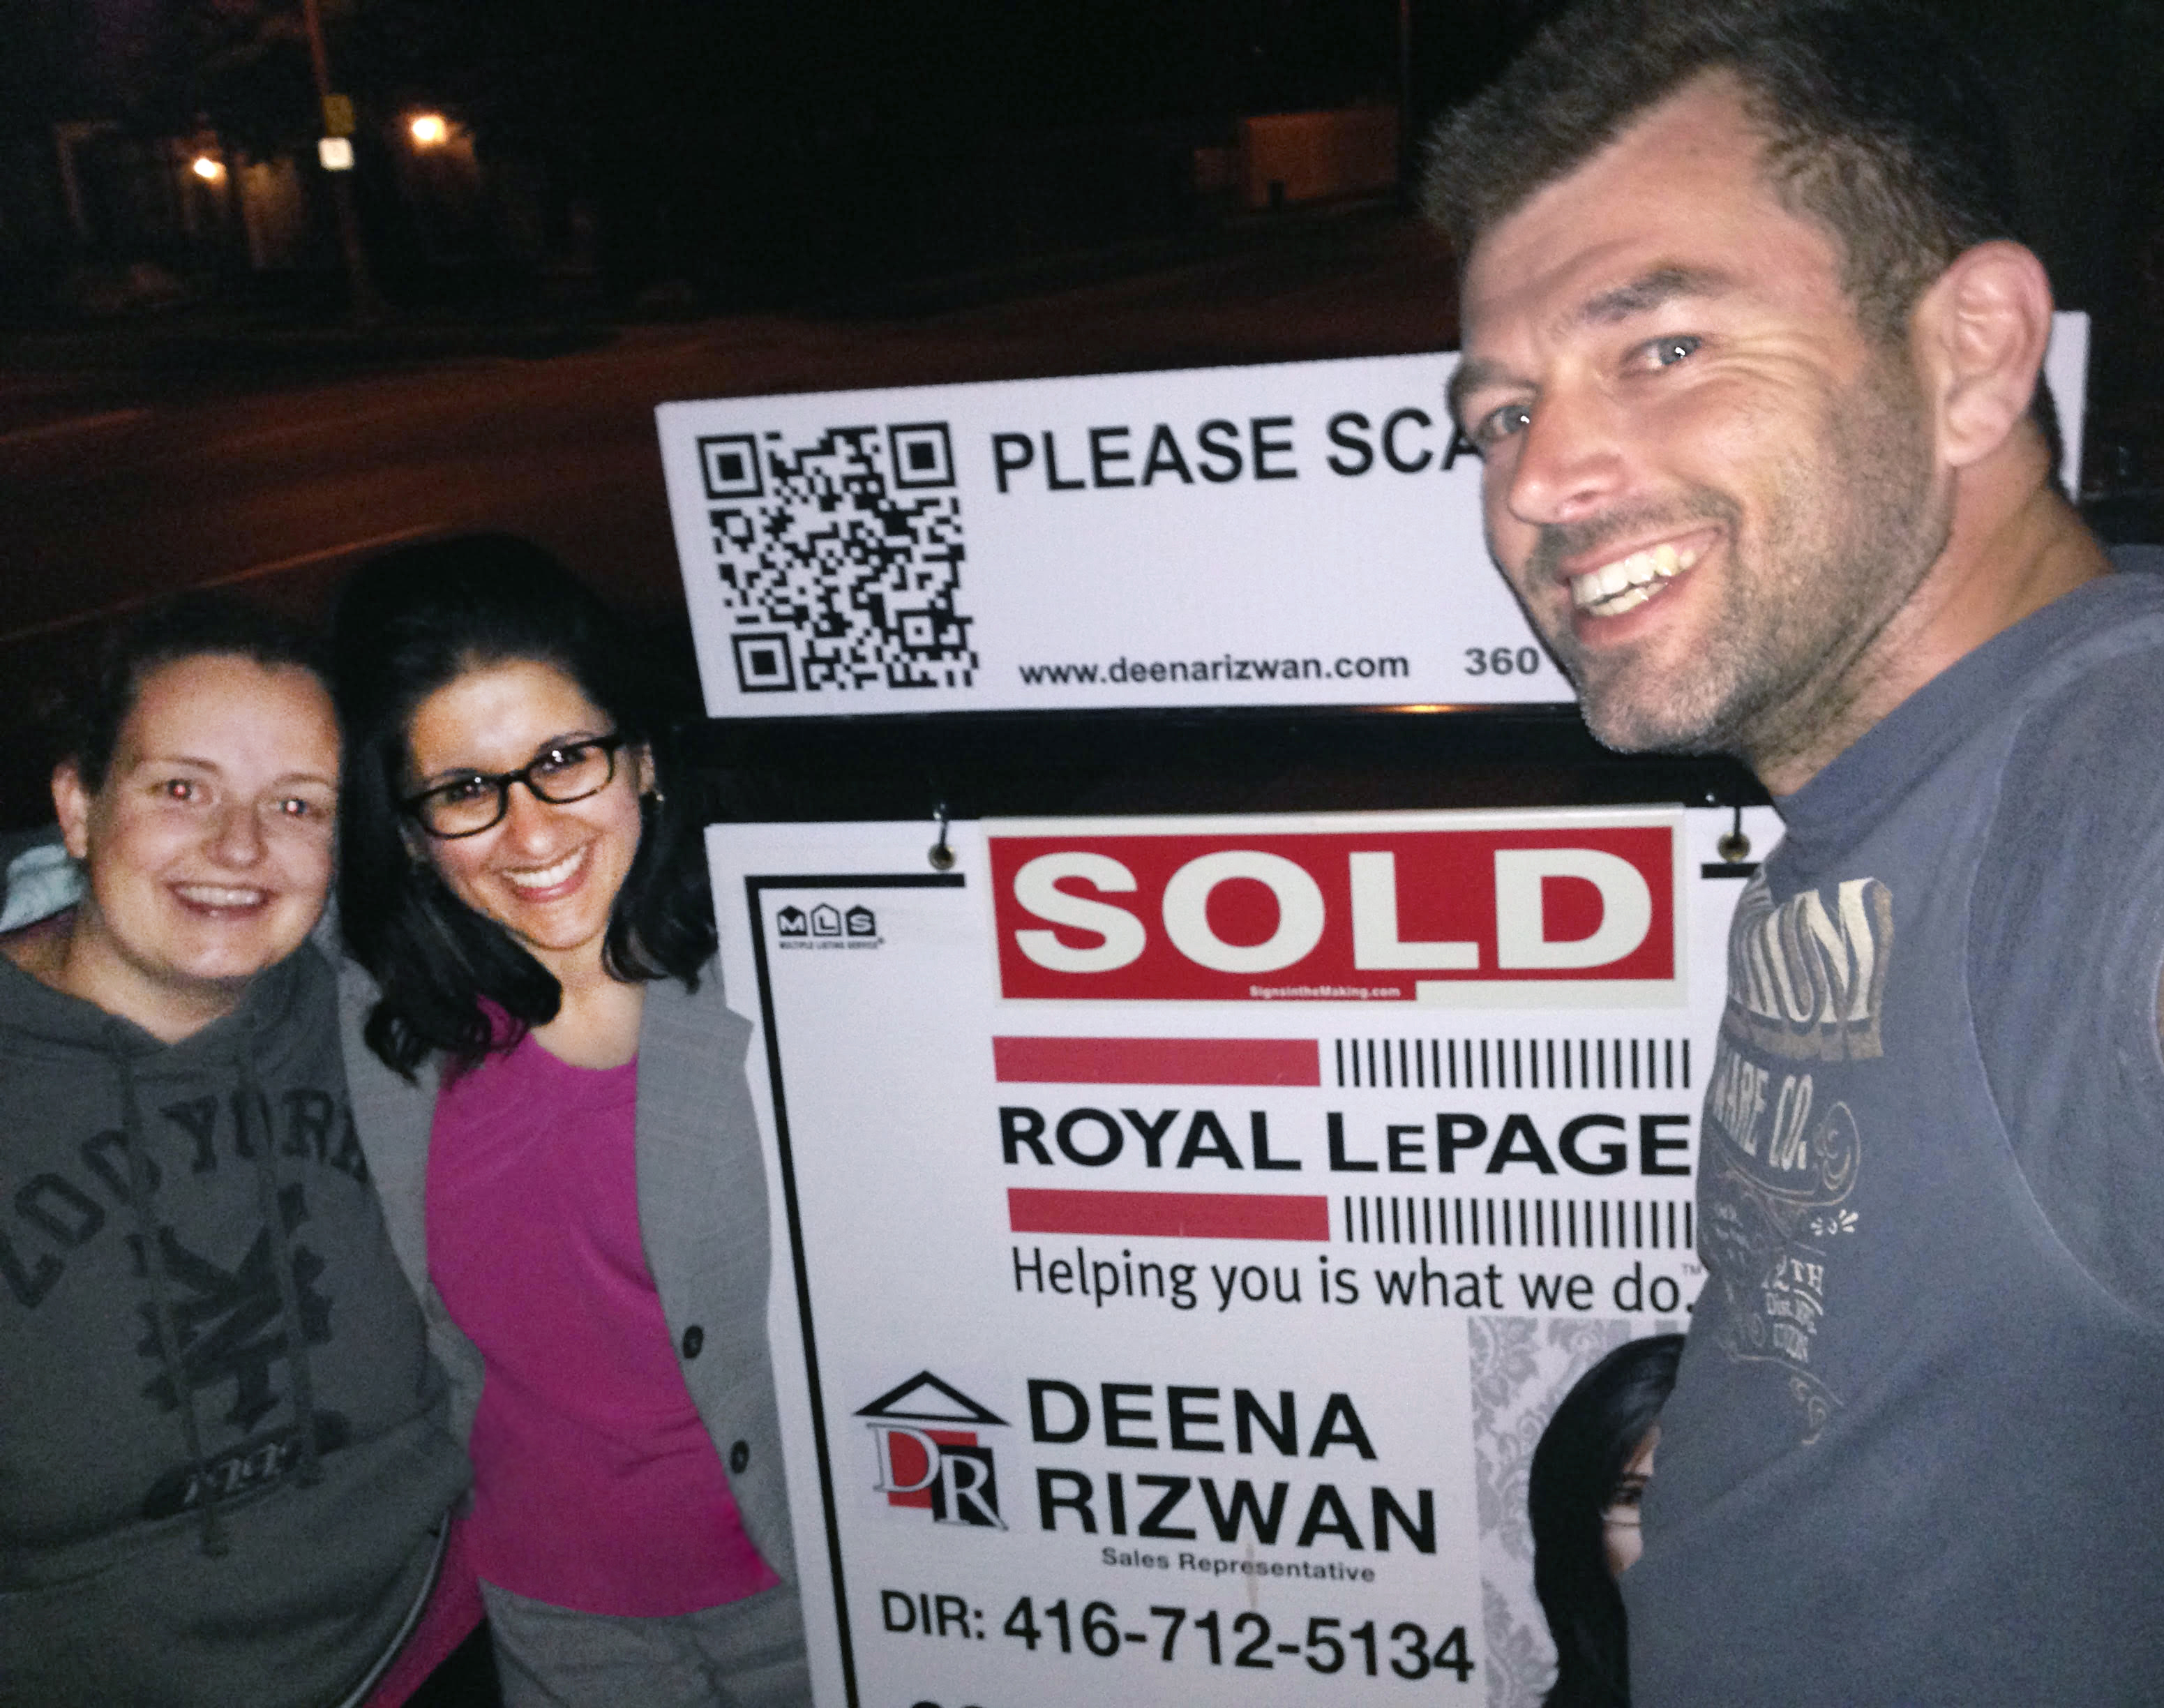 House sold by DEENA RIZWAN - Deena Rizwan Happy Home sellers - Oakville Homes